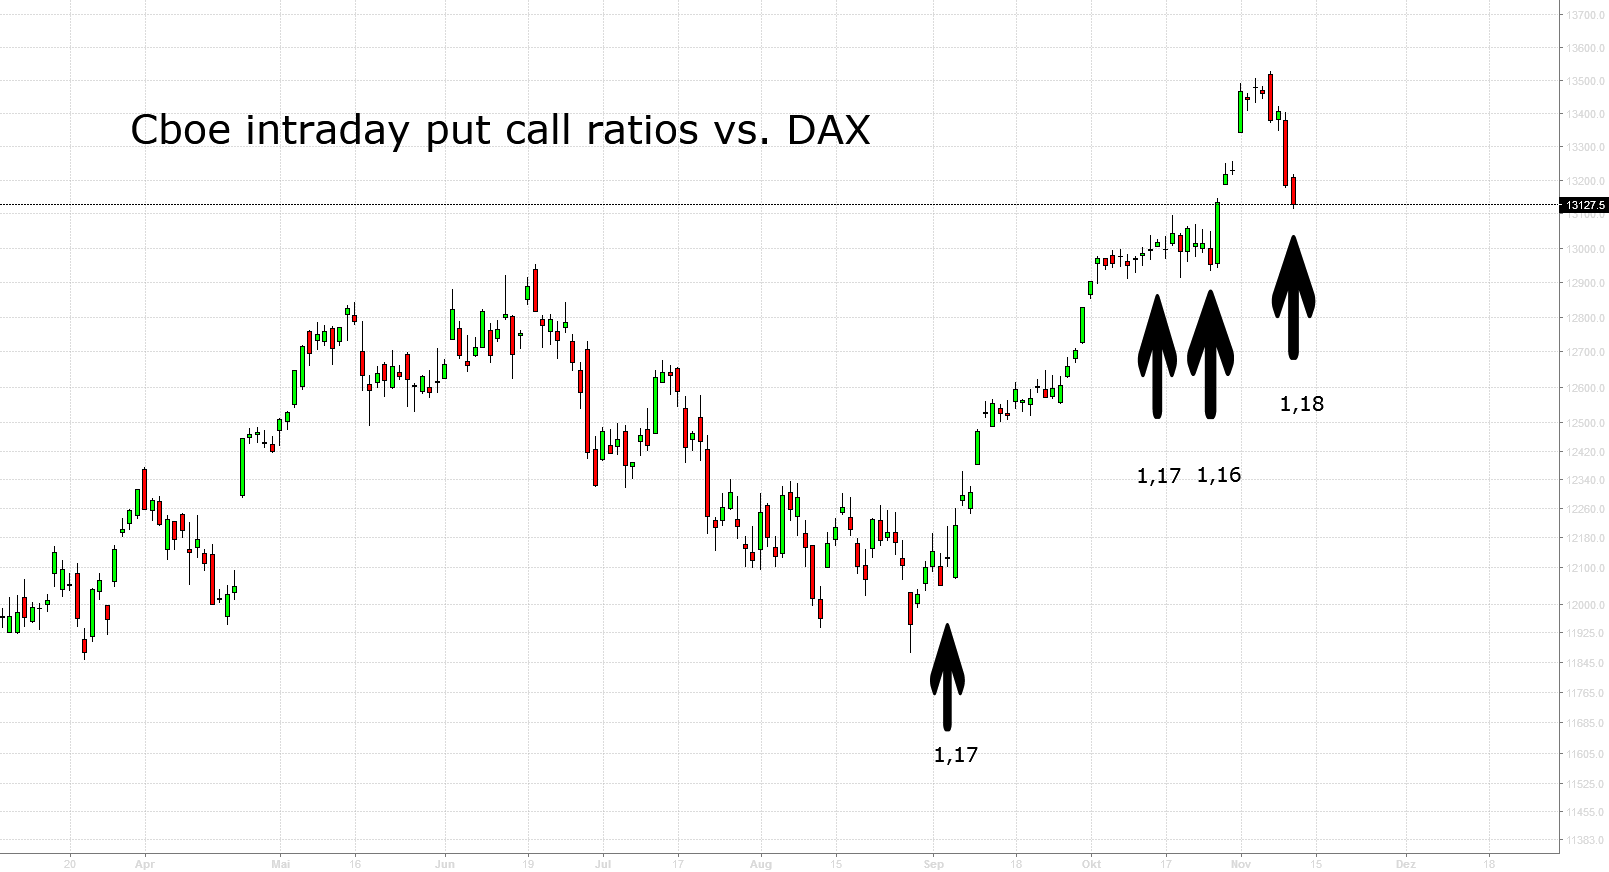 Cboe Intraday Put Call Ratios vs. DAX